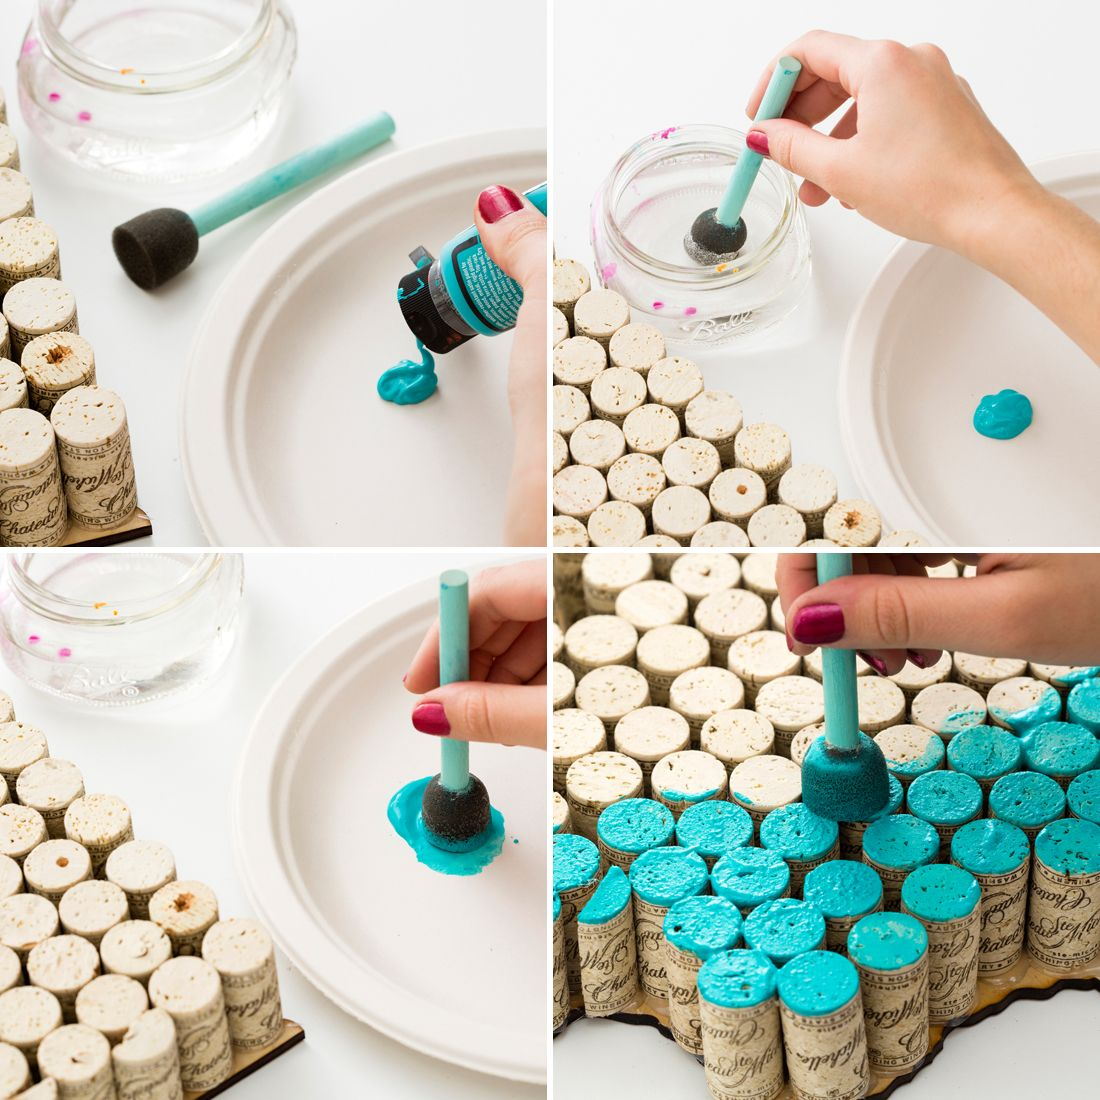 Crafts to do with wine corks - Make State Shaped Wall Art Using Old Wine Corks